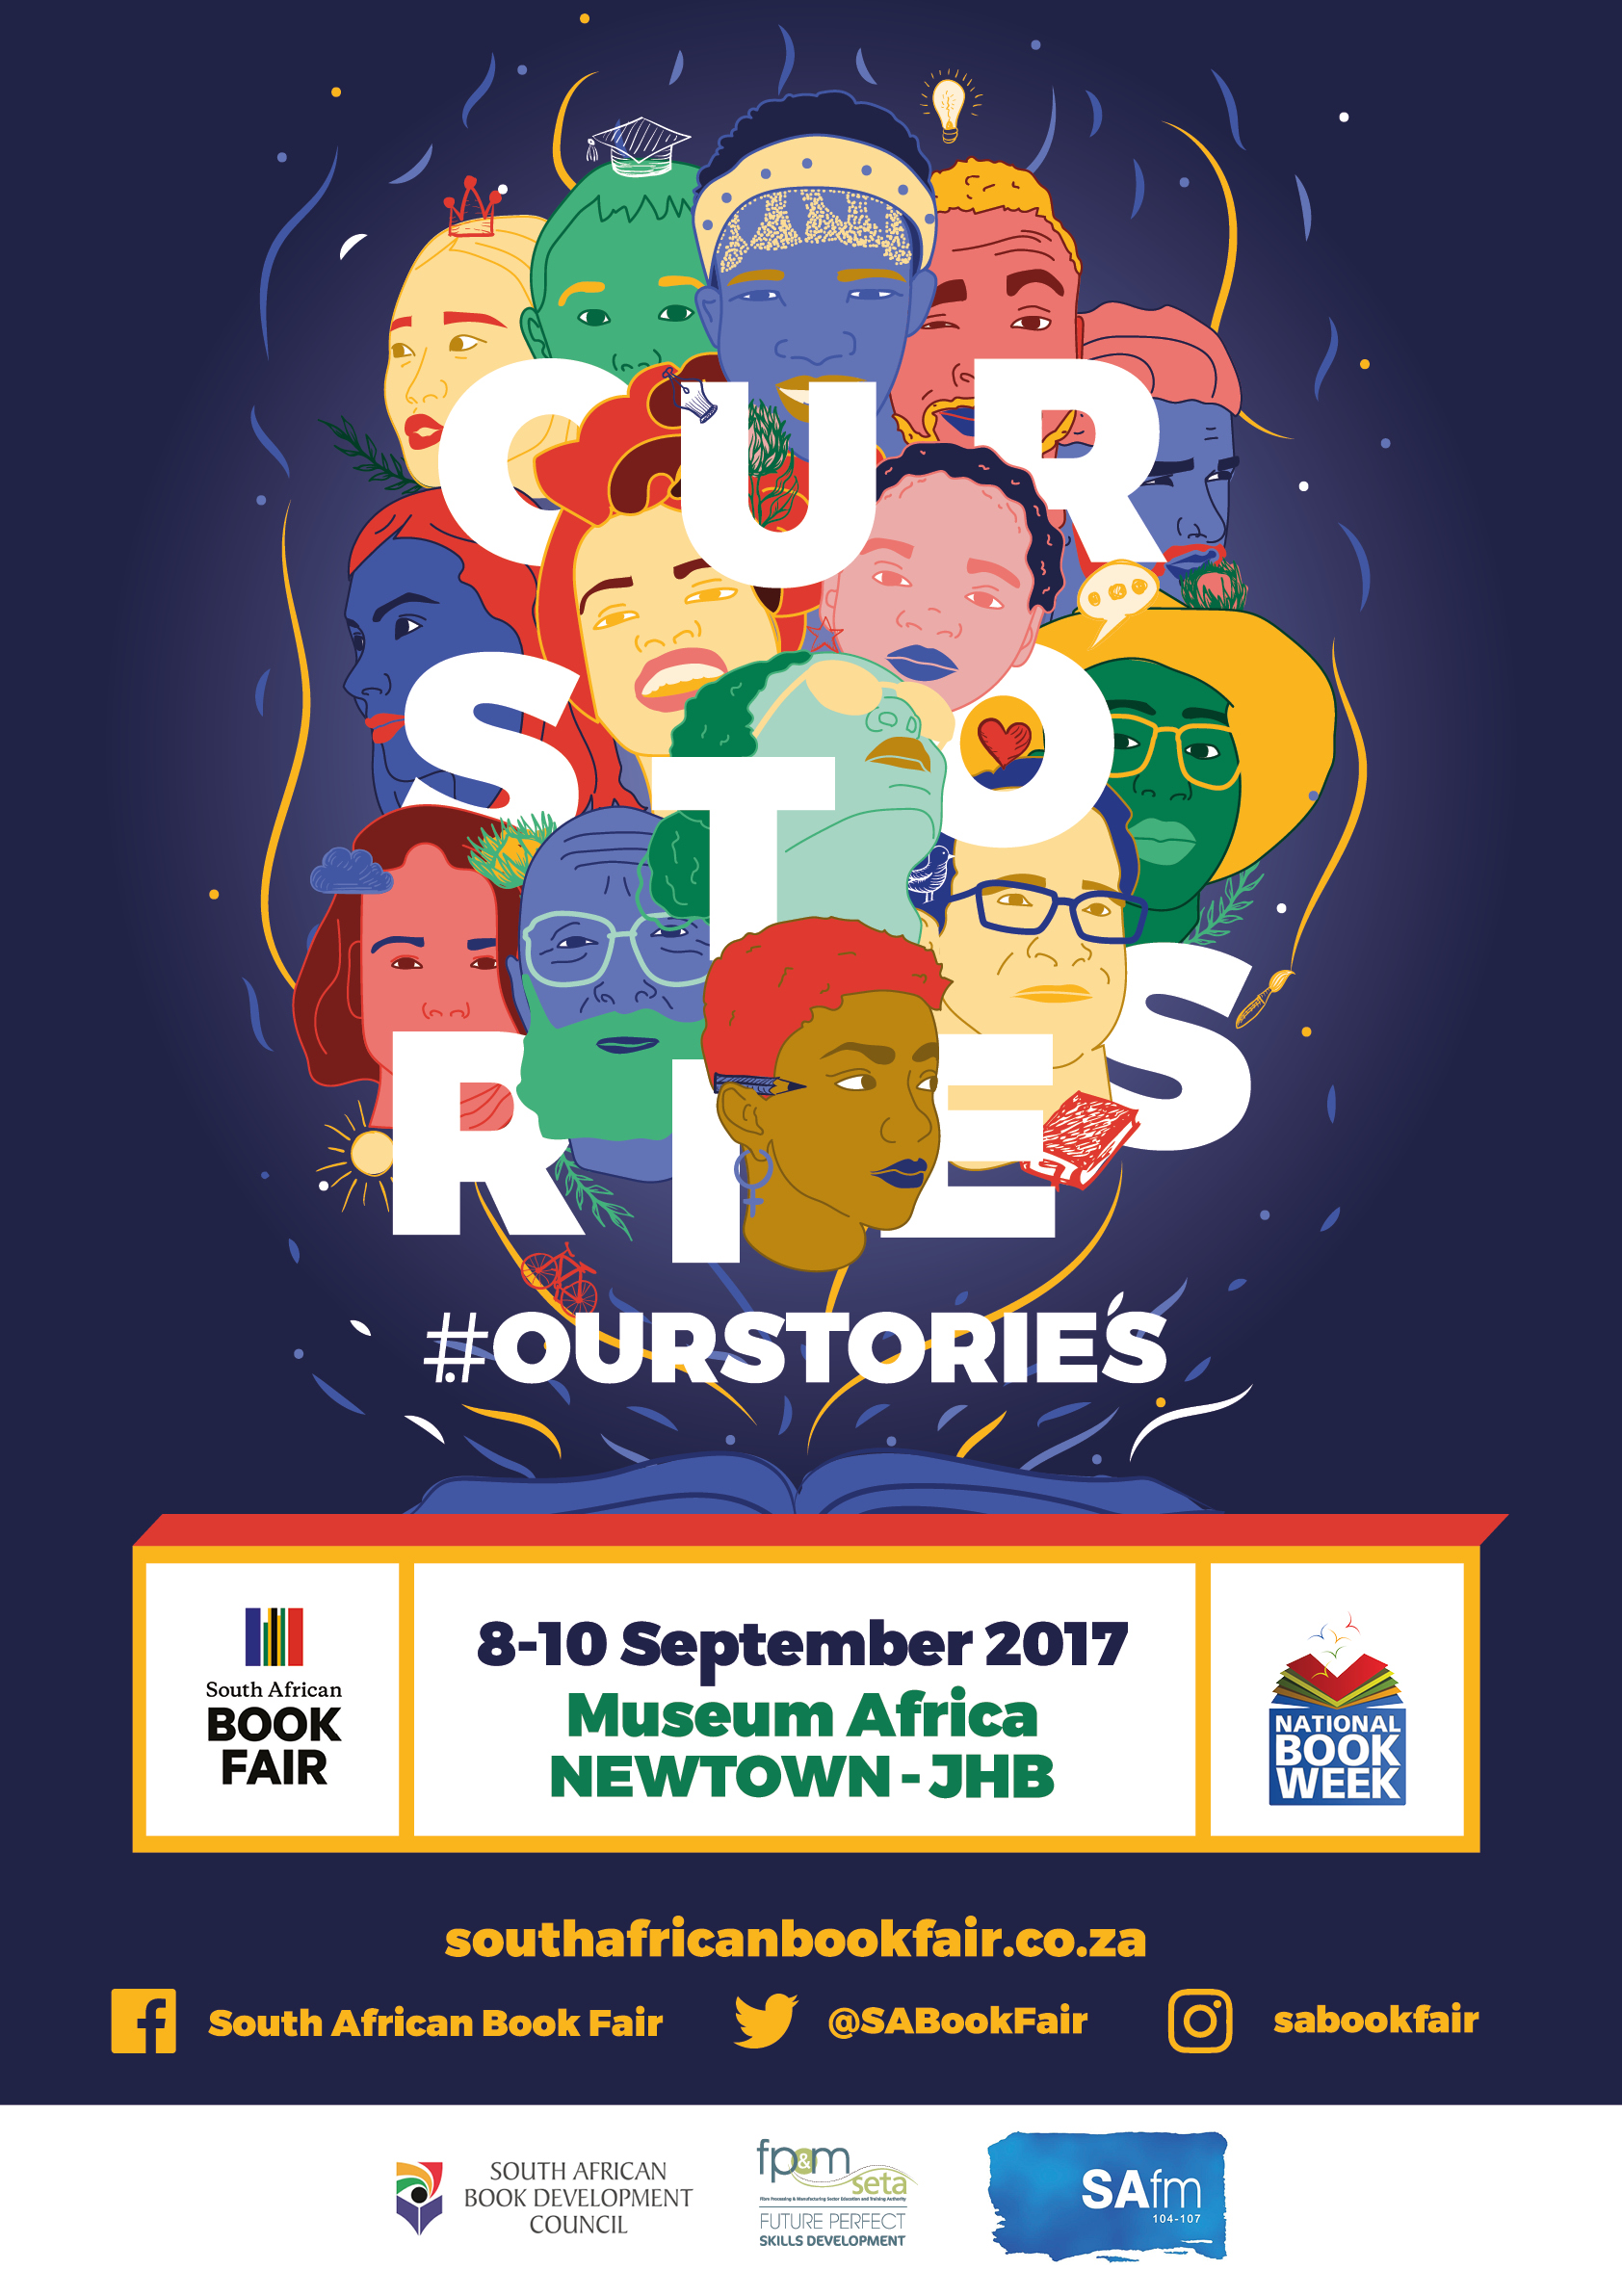 South African Book Fair 2017